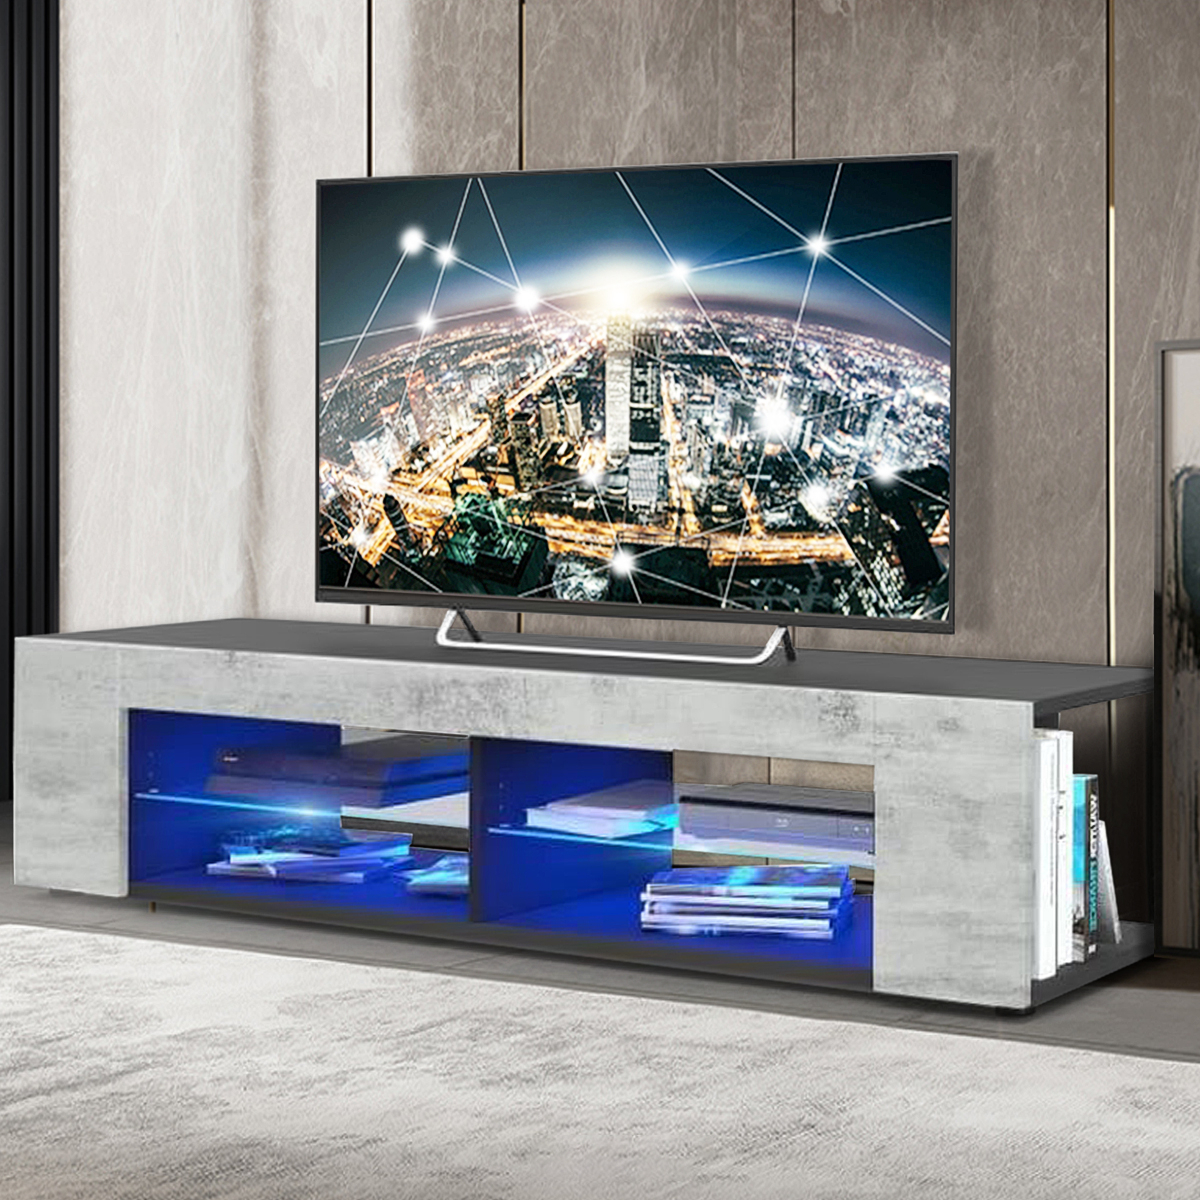 """Best And Newest Karon Tv Stands For Tvs Up To 65"""" With Regard To Modern Led Tv Stand Tv Cabinet For Tvs Up To 65"""", With (View 18 of 25)"""